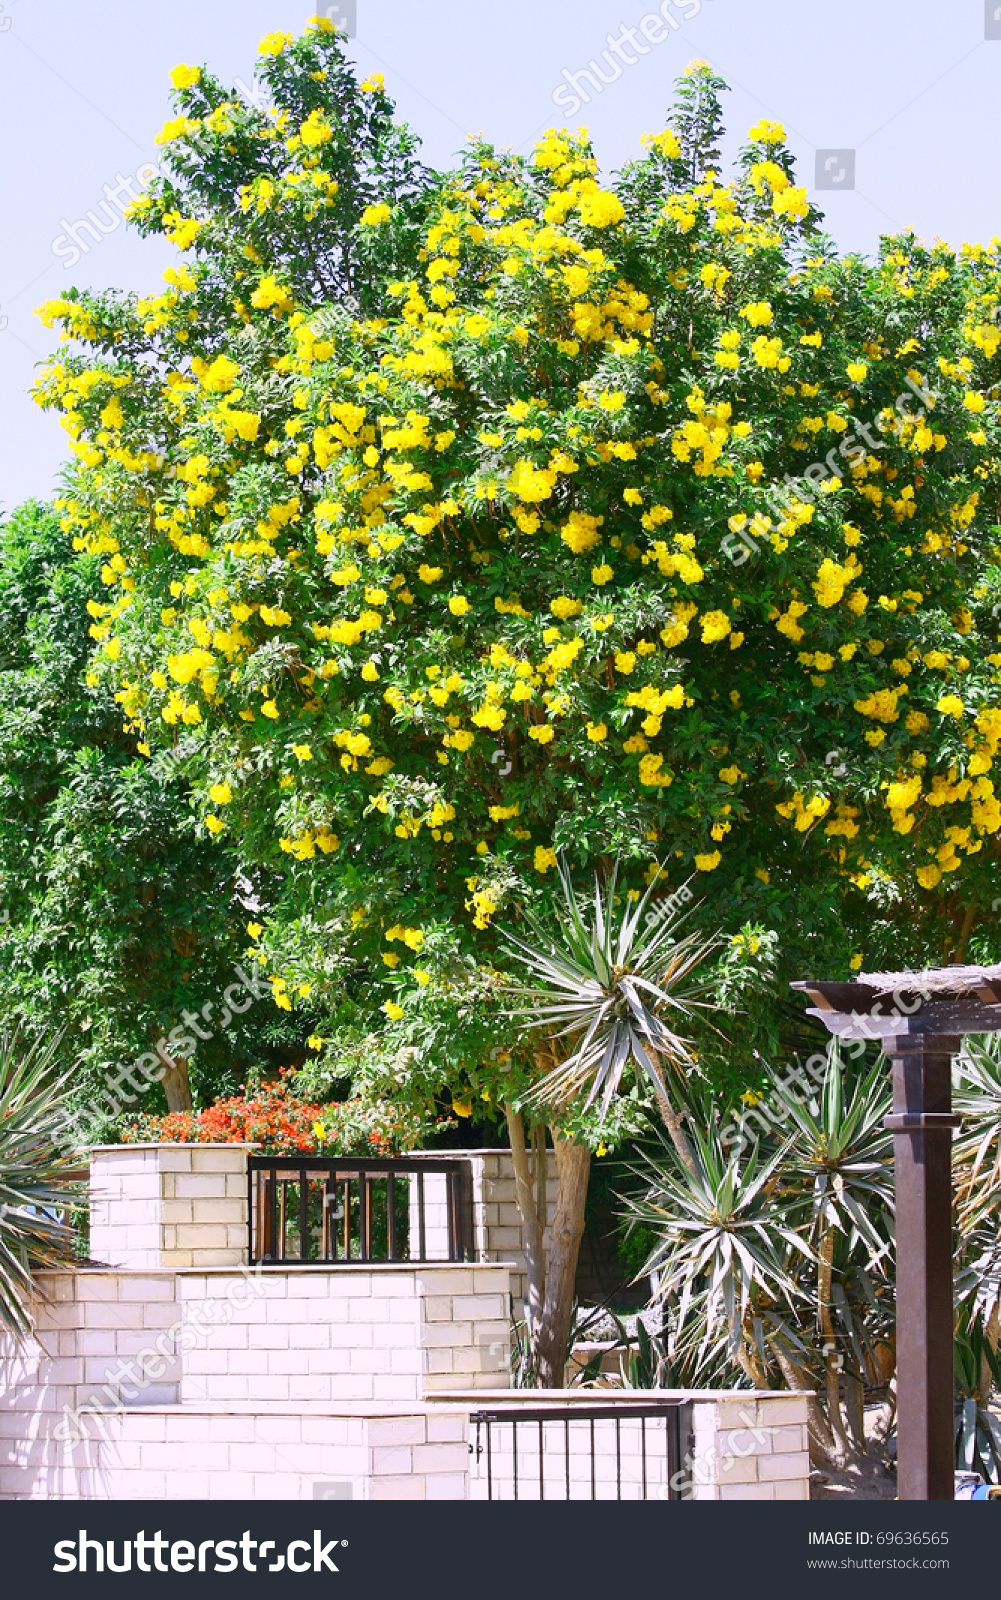 Tree yellow flowers tropical garden stock photo download now tree with yellow flowers in a tropical garden mightylinksfo